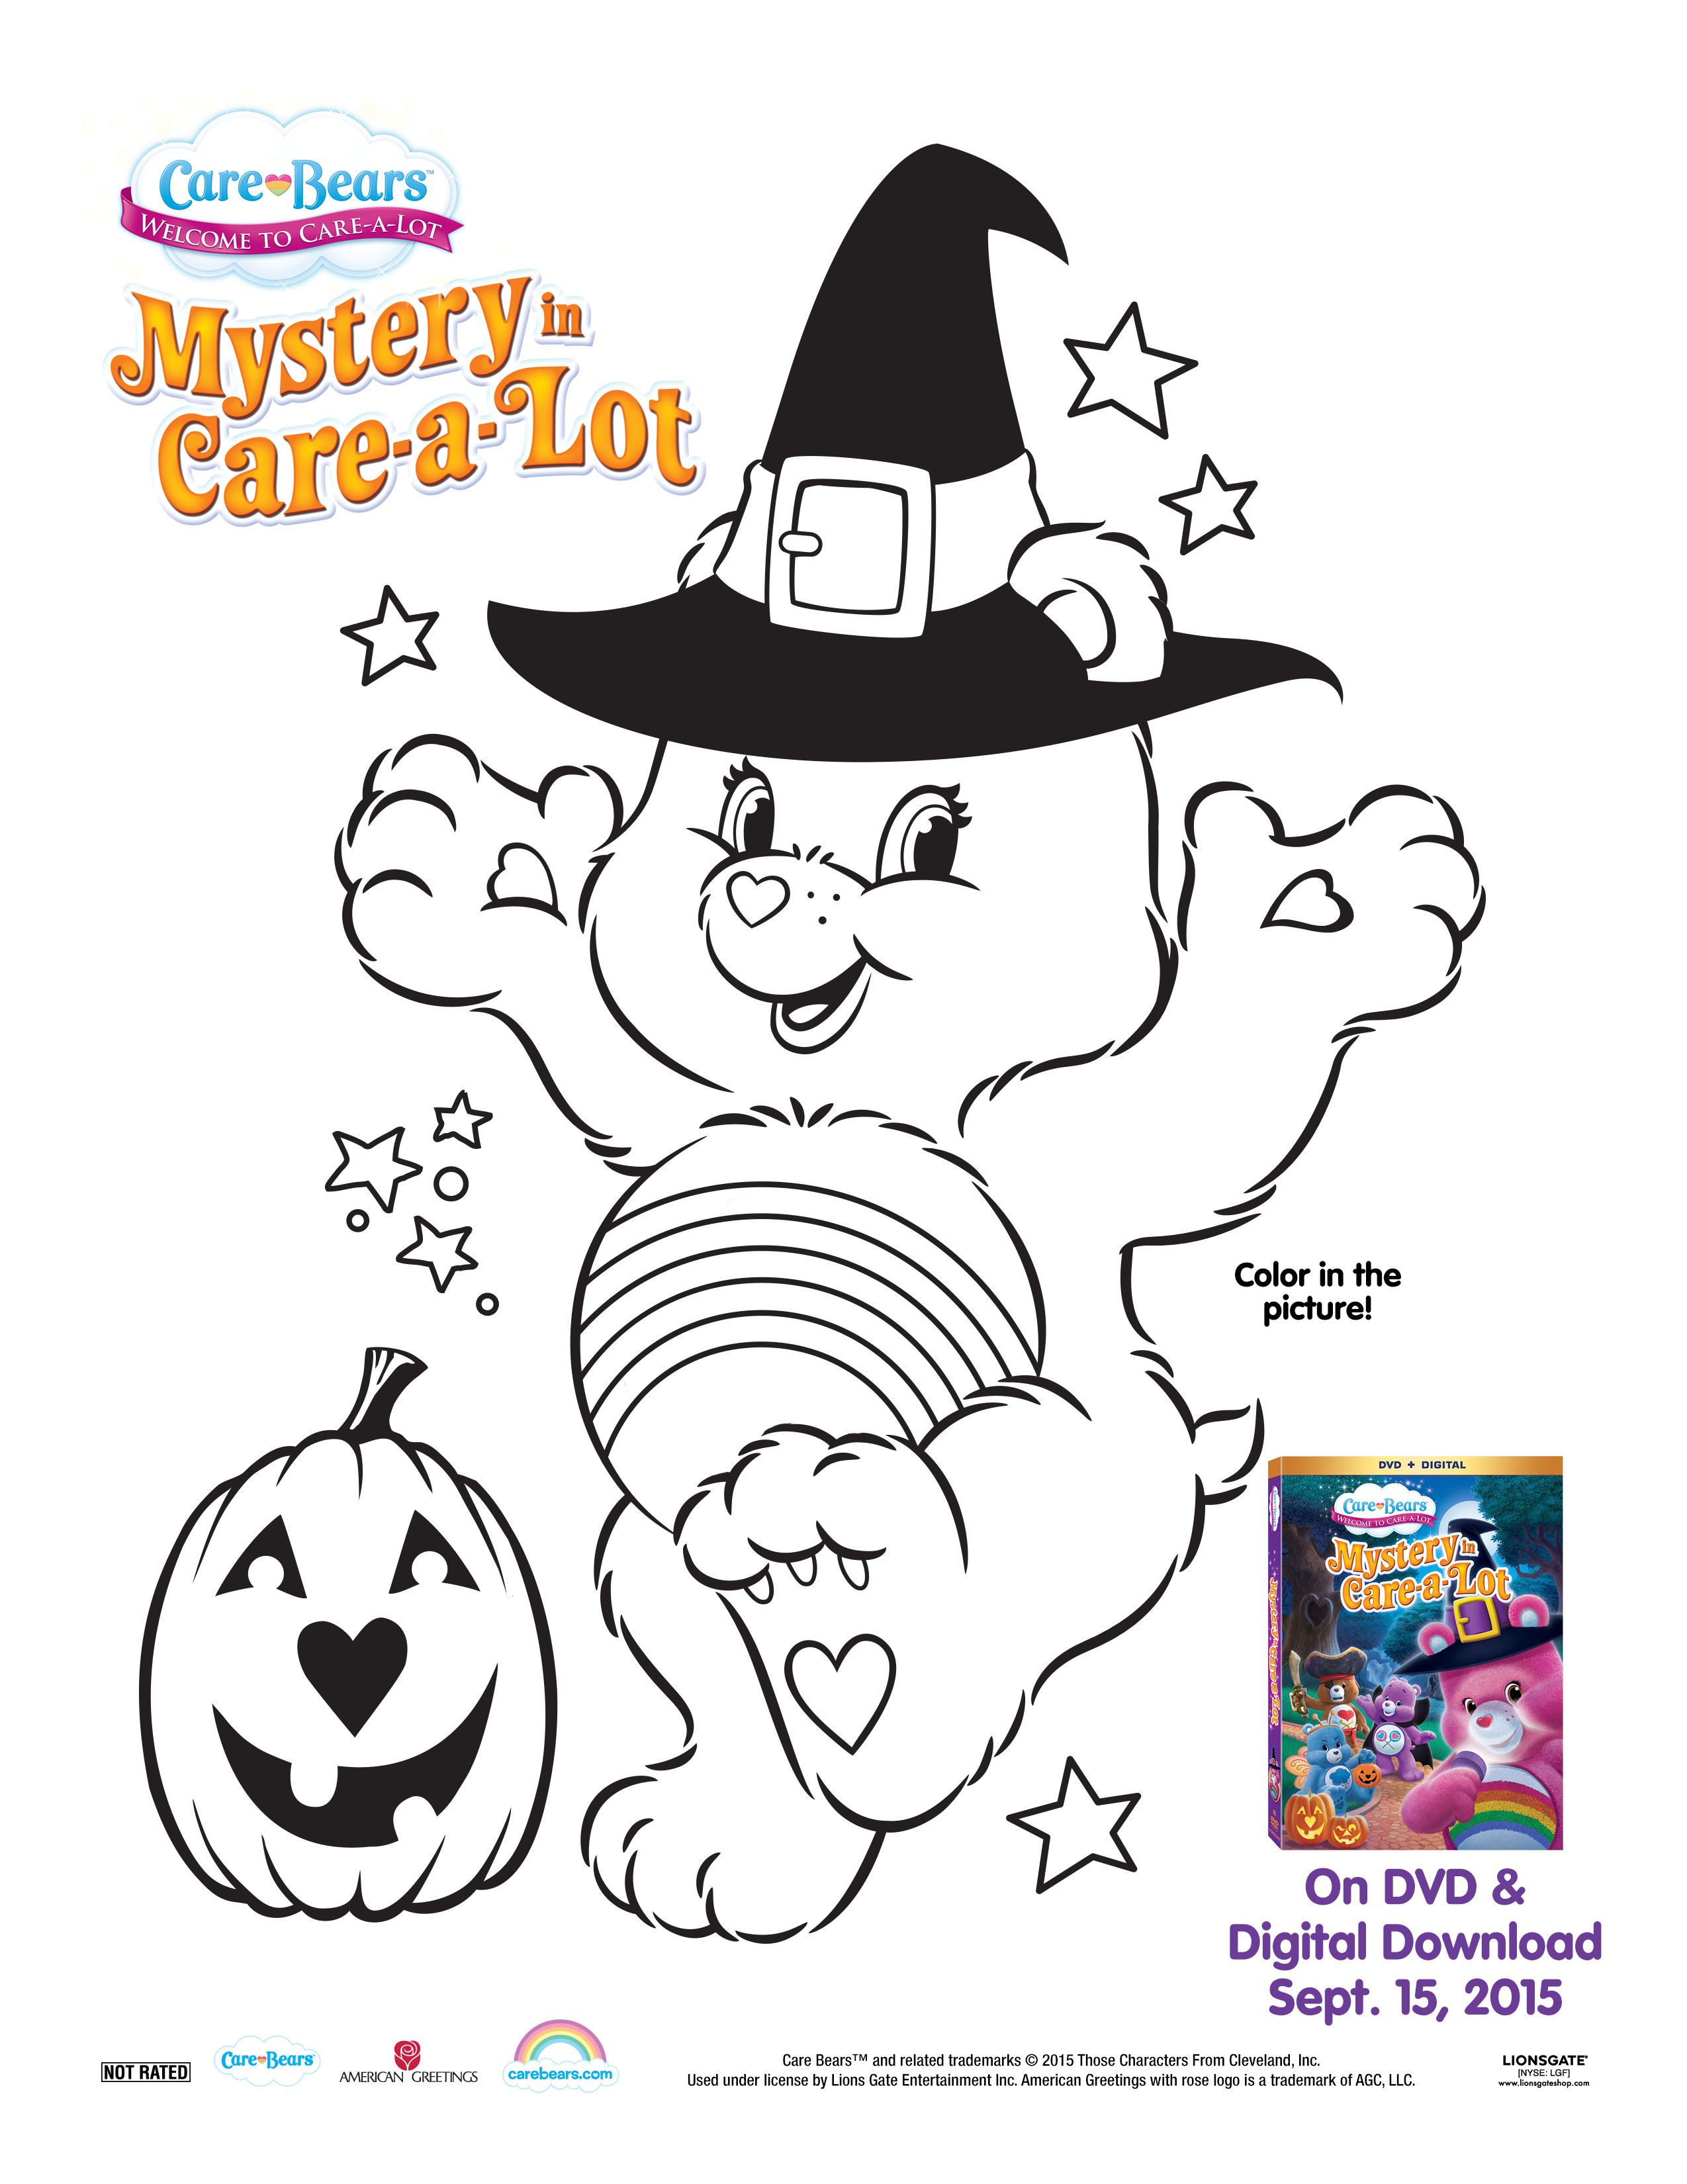 Care bears mystery in care a lot giveaway family fun journal to go along with the dvd here is a halloween care bear coloring sheet to access the printable click on the image below to download it kristyandbryce Choice Image